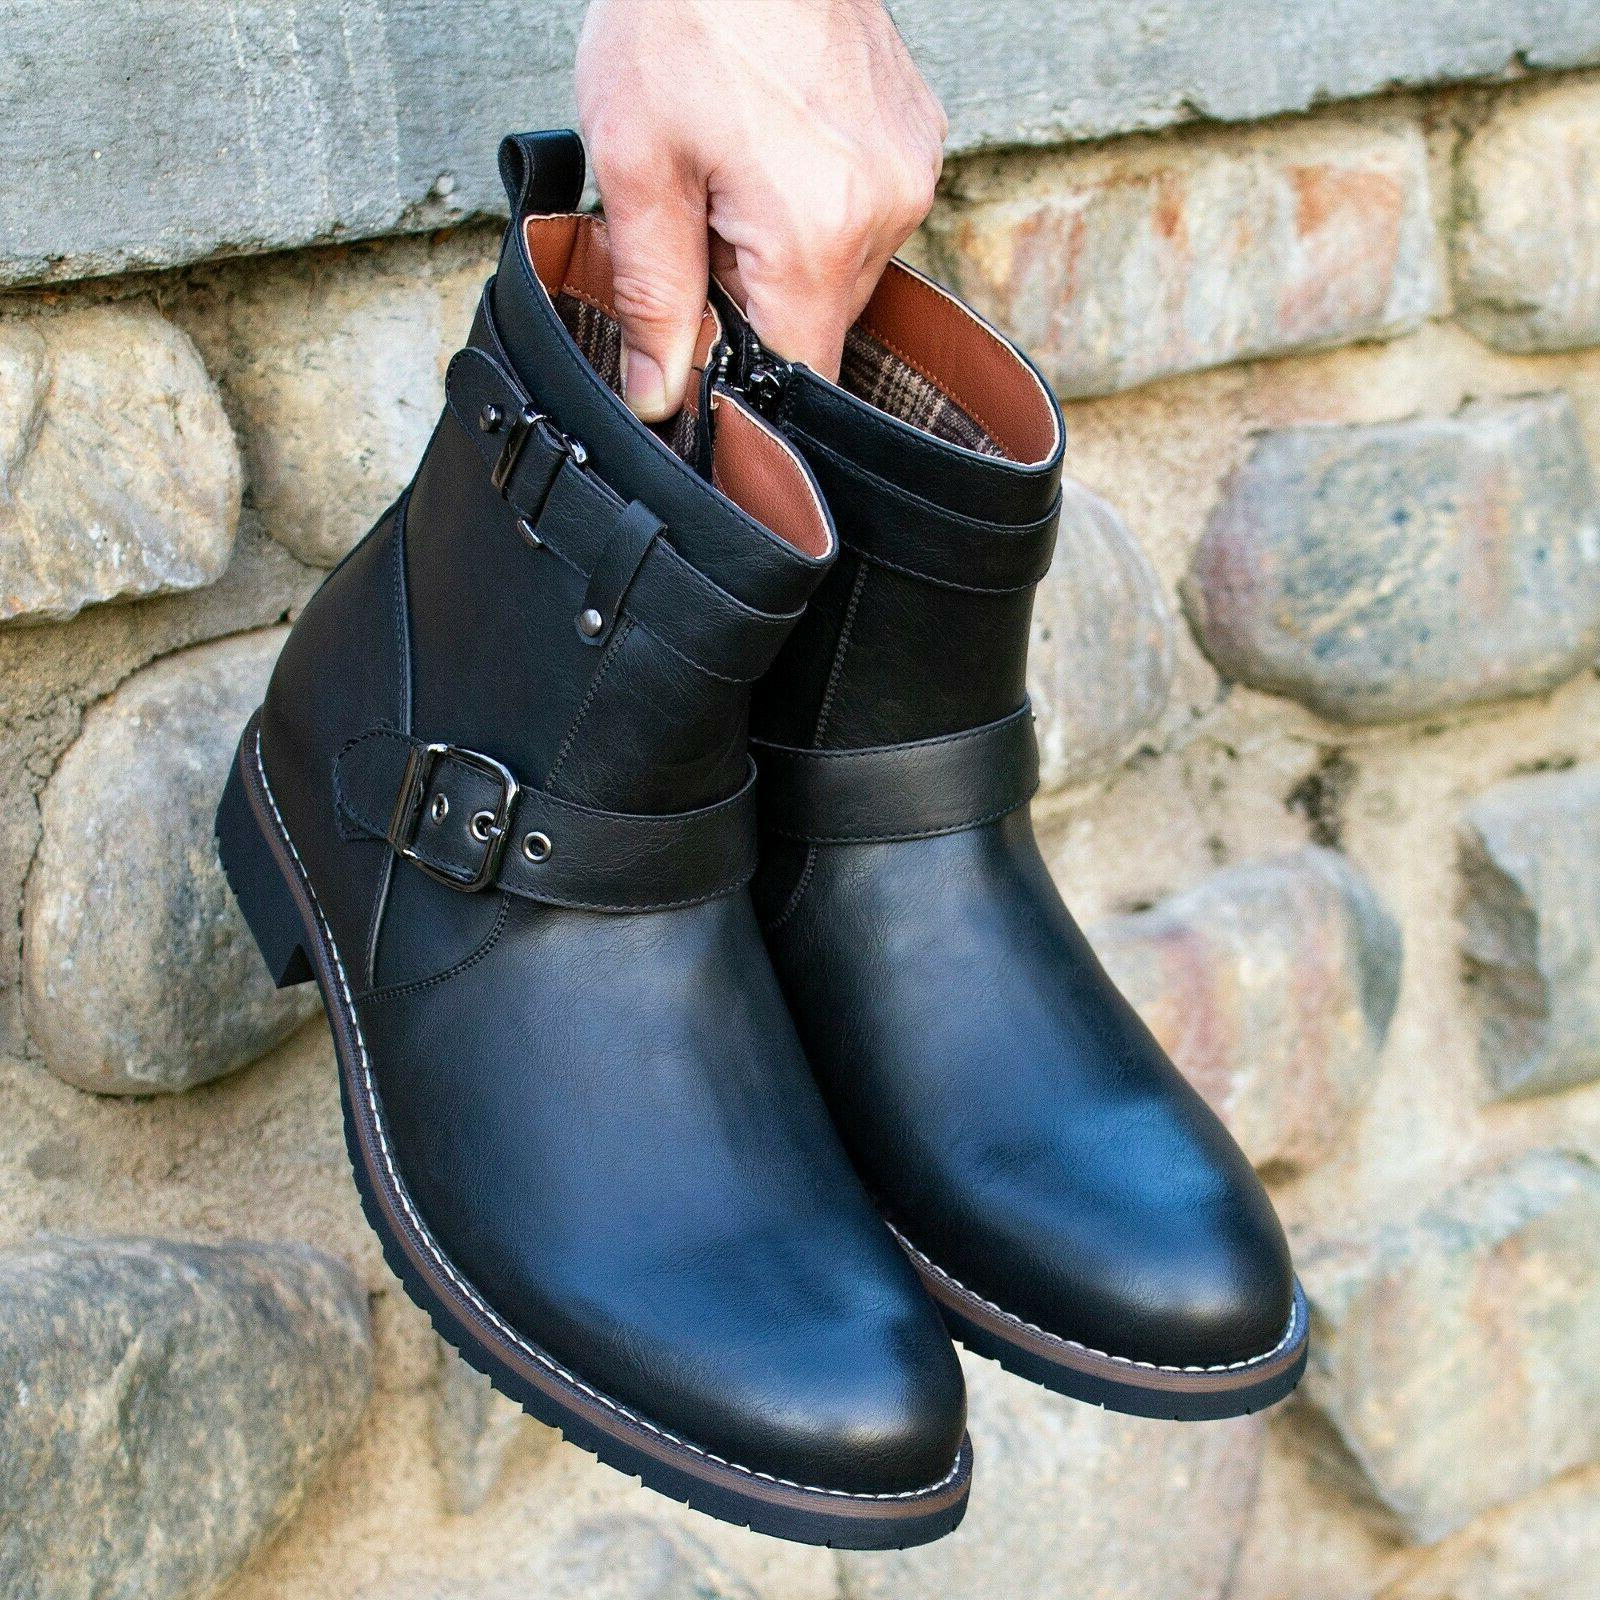 Men's Motorcycle Leather Buckle Round-toe Boots